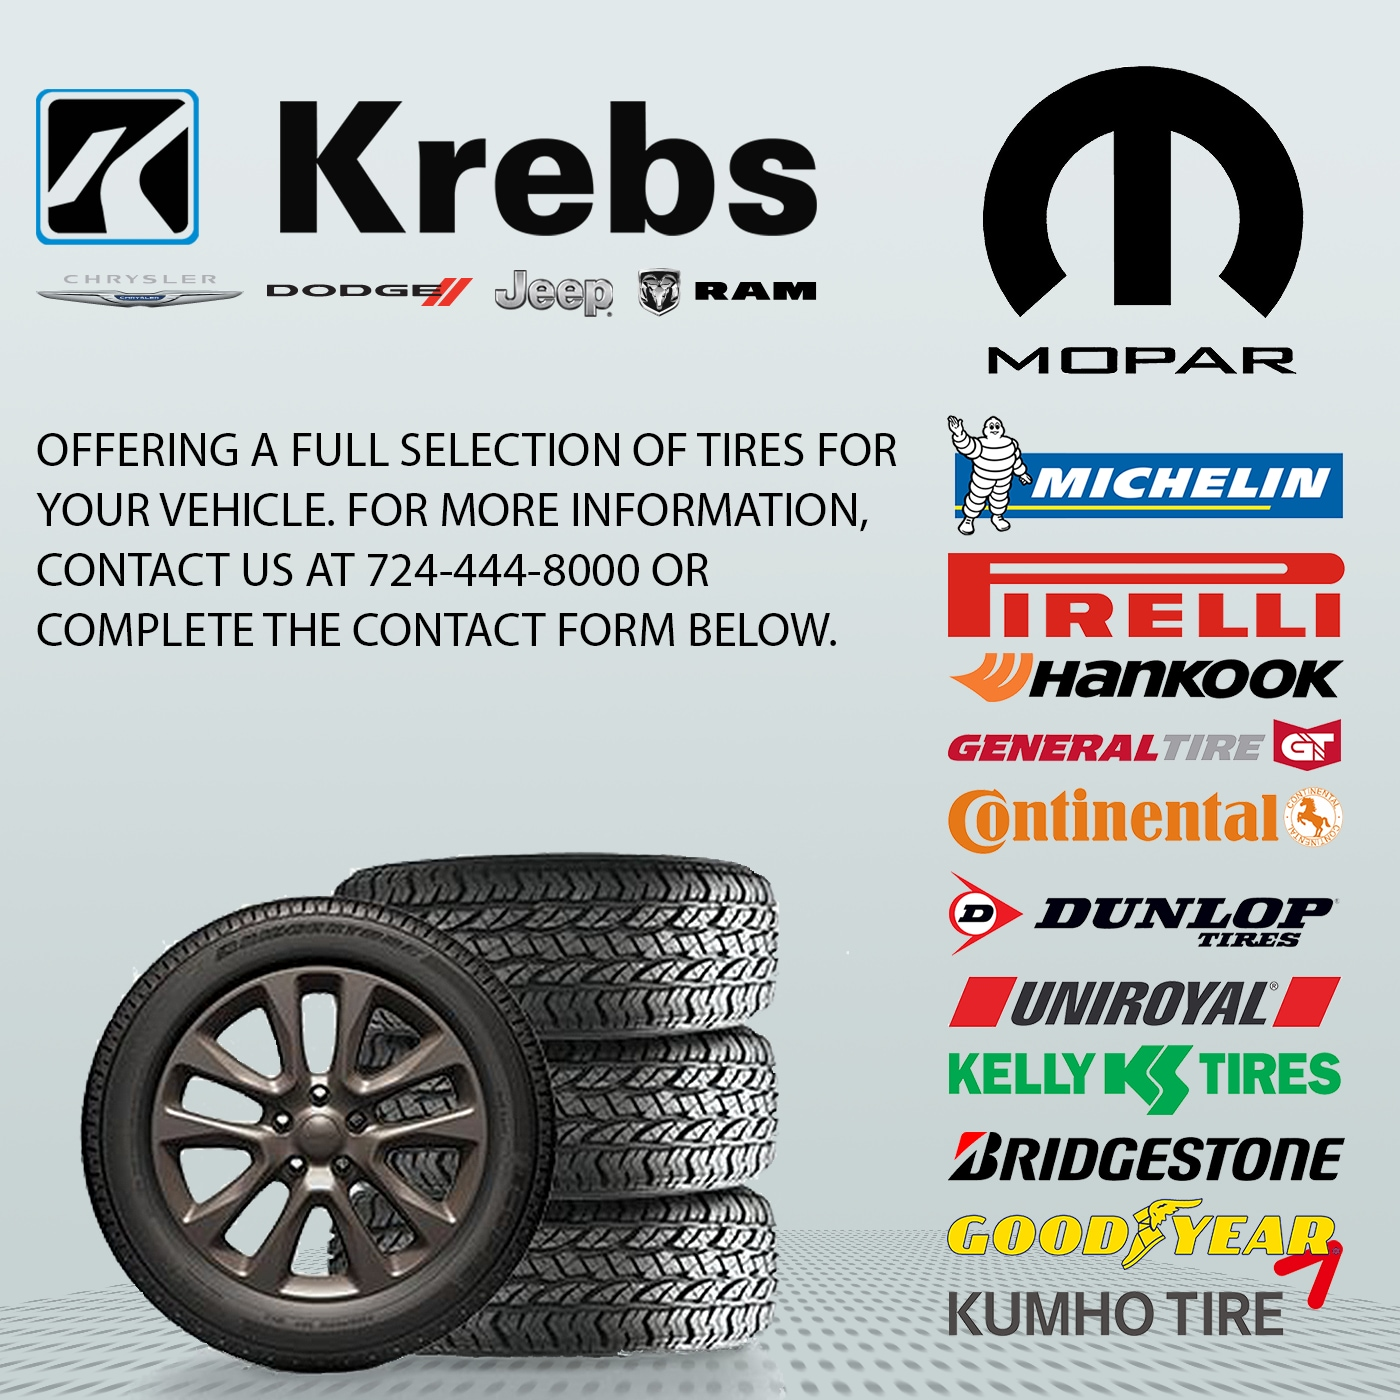 Shop For Tires In Gibsonia Allison Park Pittsburgh Butler Pa